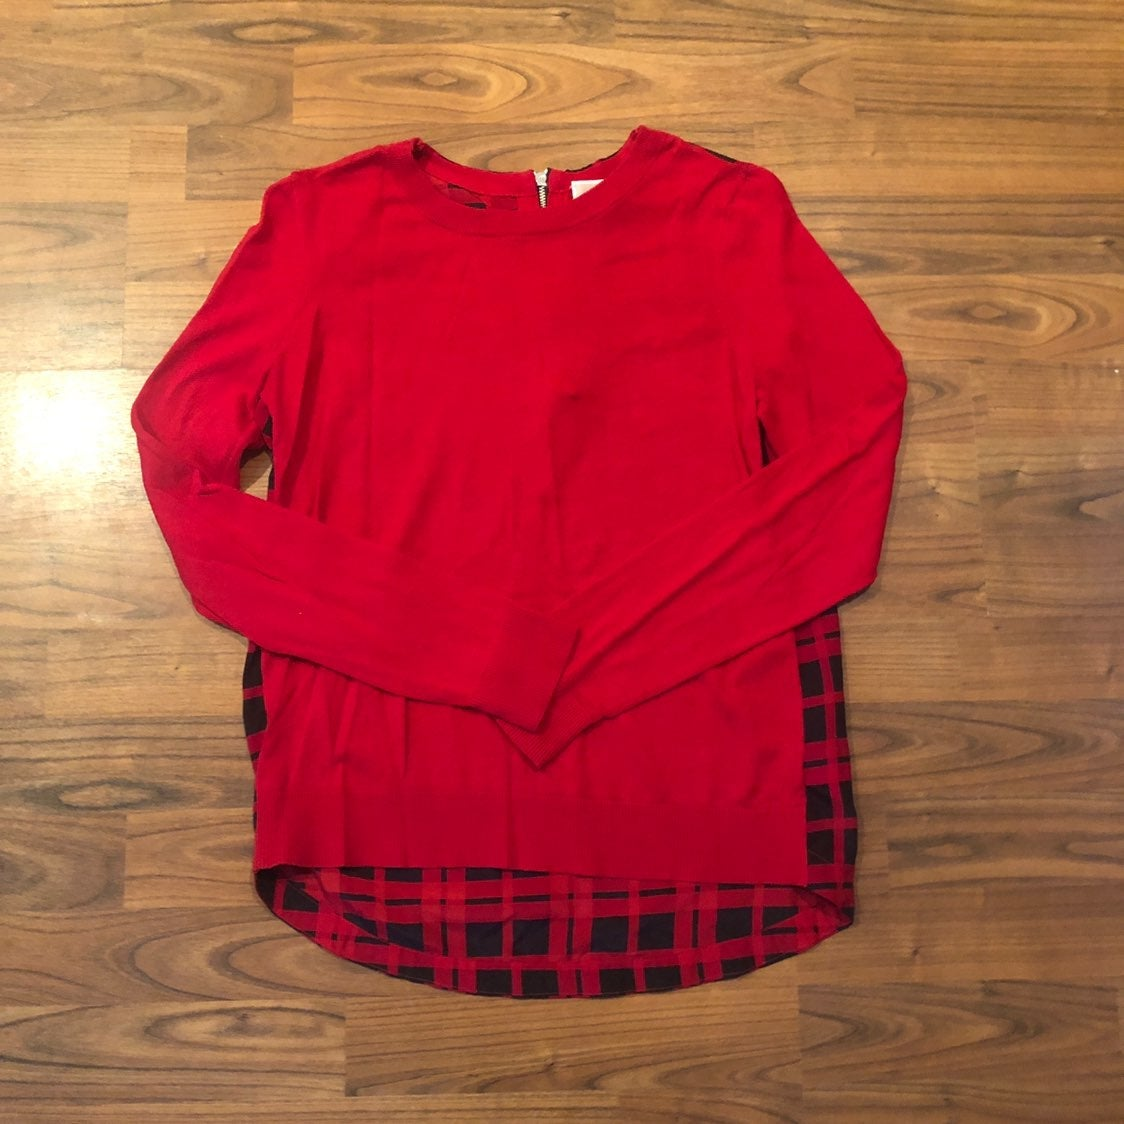 Michael Kors red top size extra small